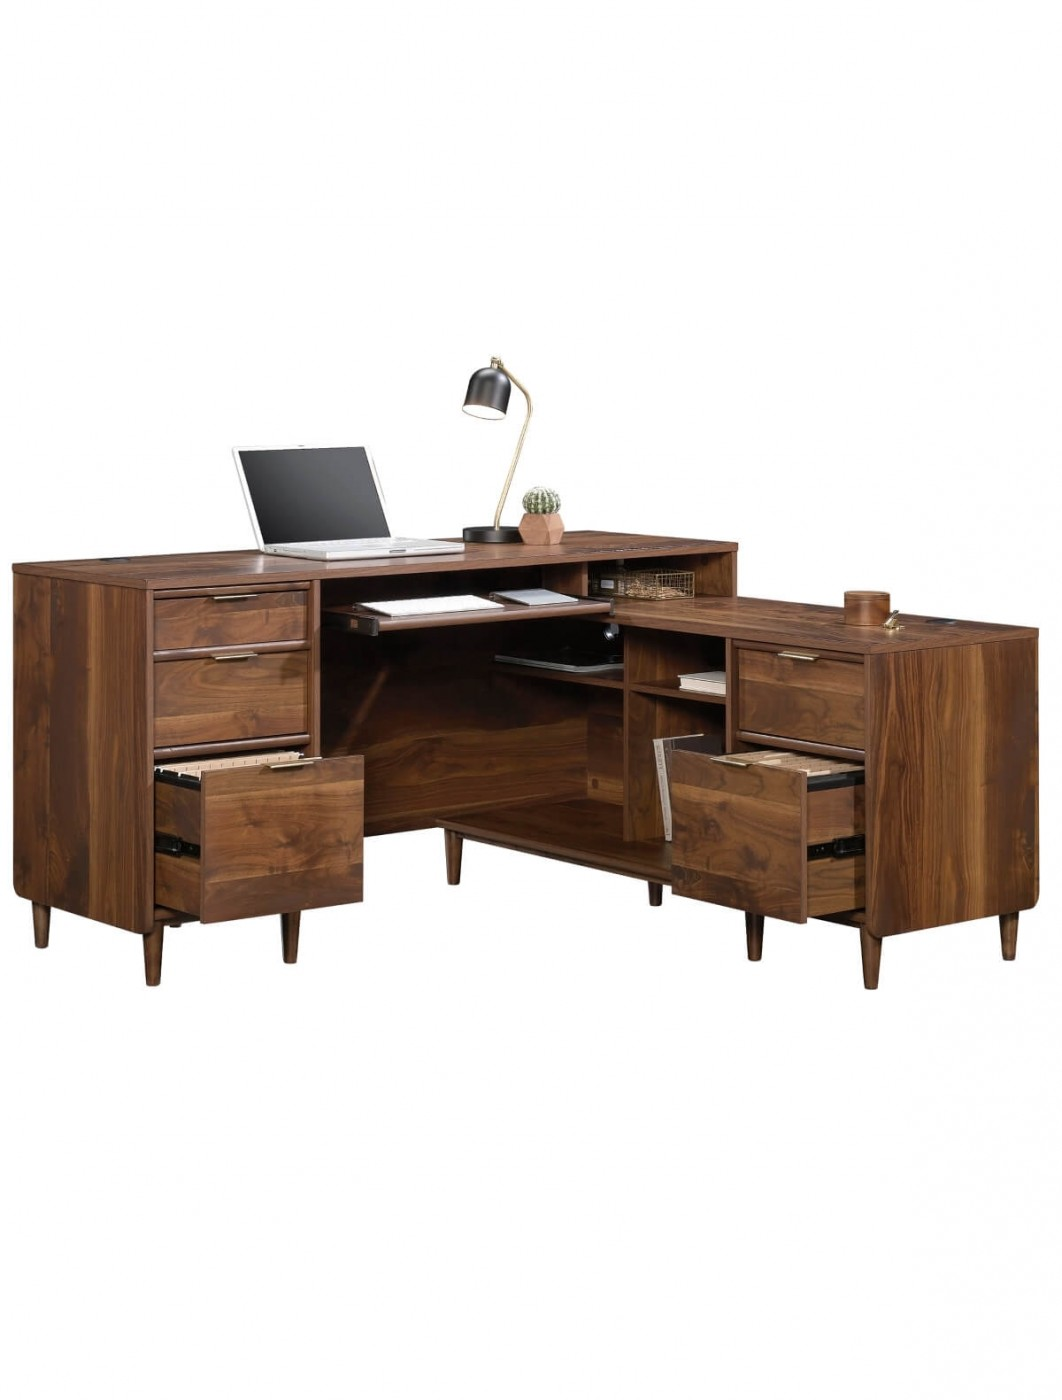 Home office desks clifton place l shaped walnut office desk 5421120 enlarged view